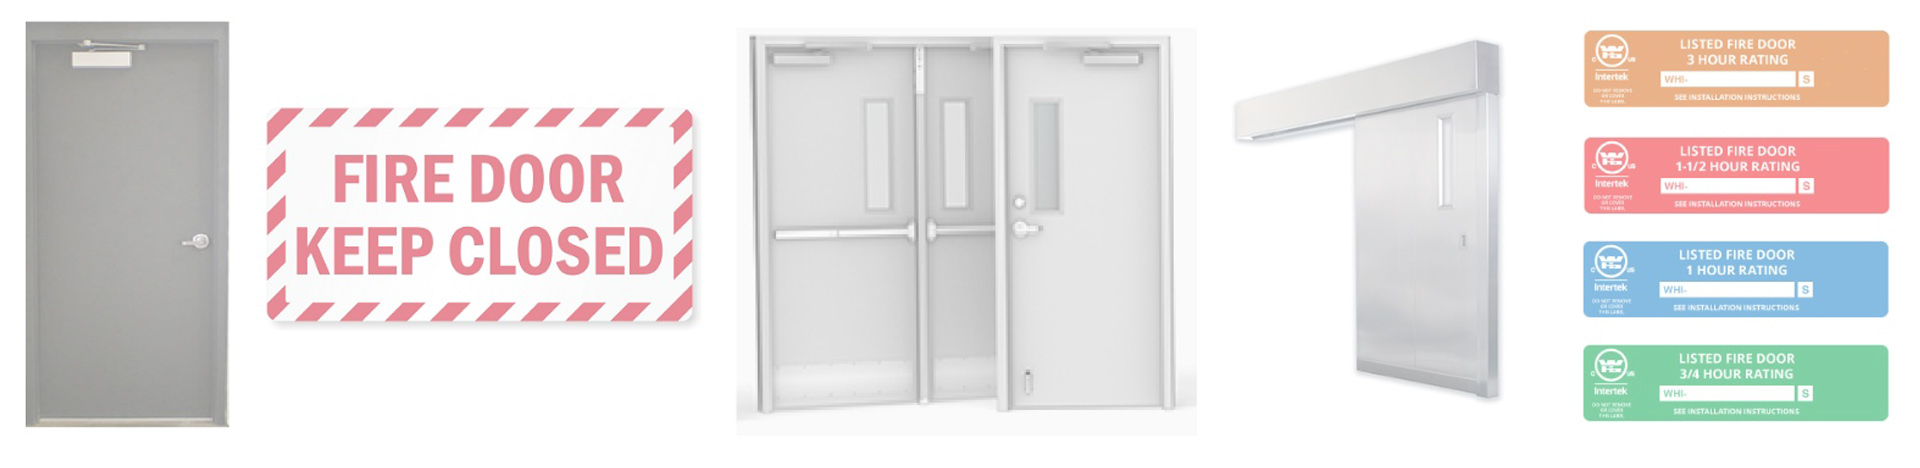 An example of fire doors and related images.